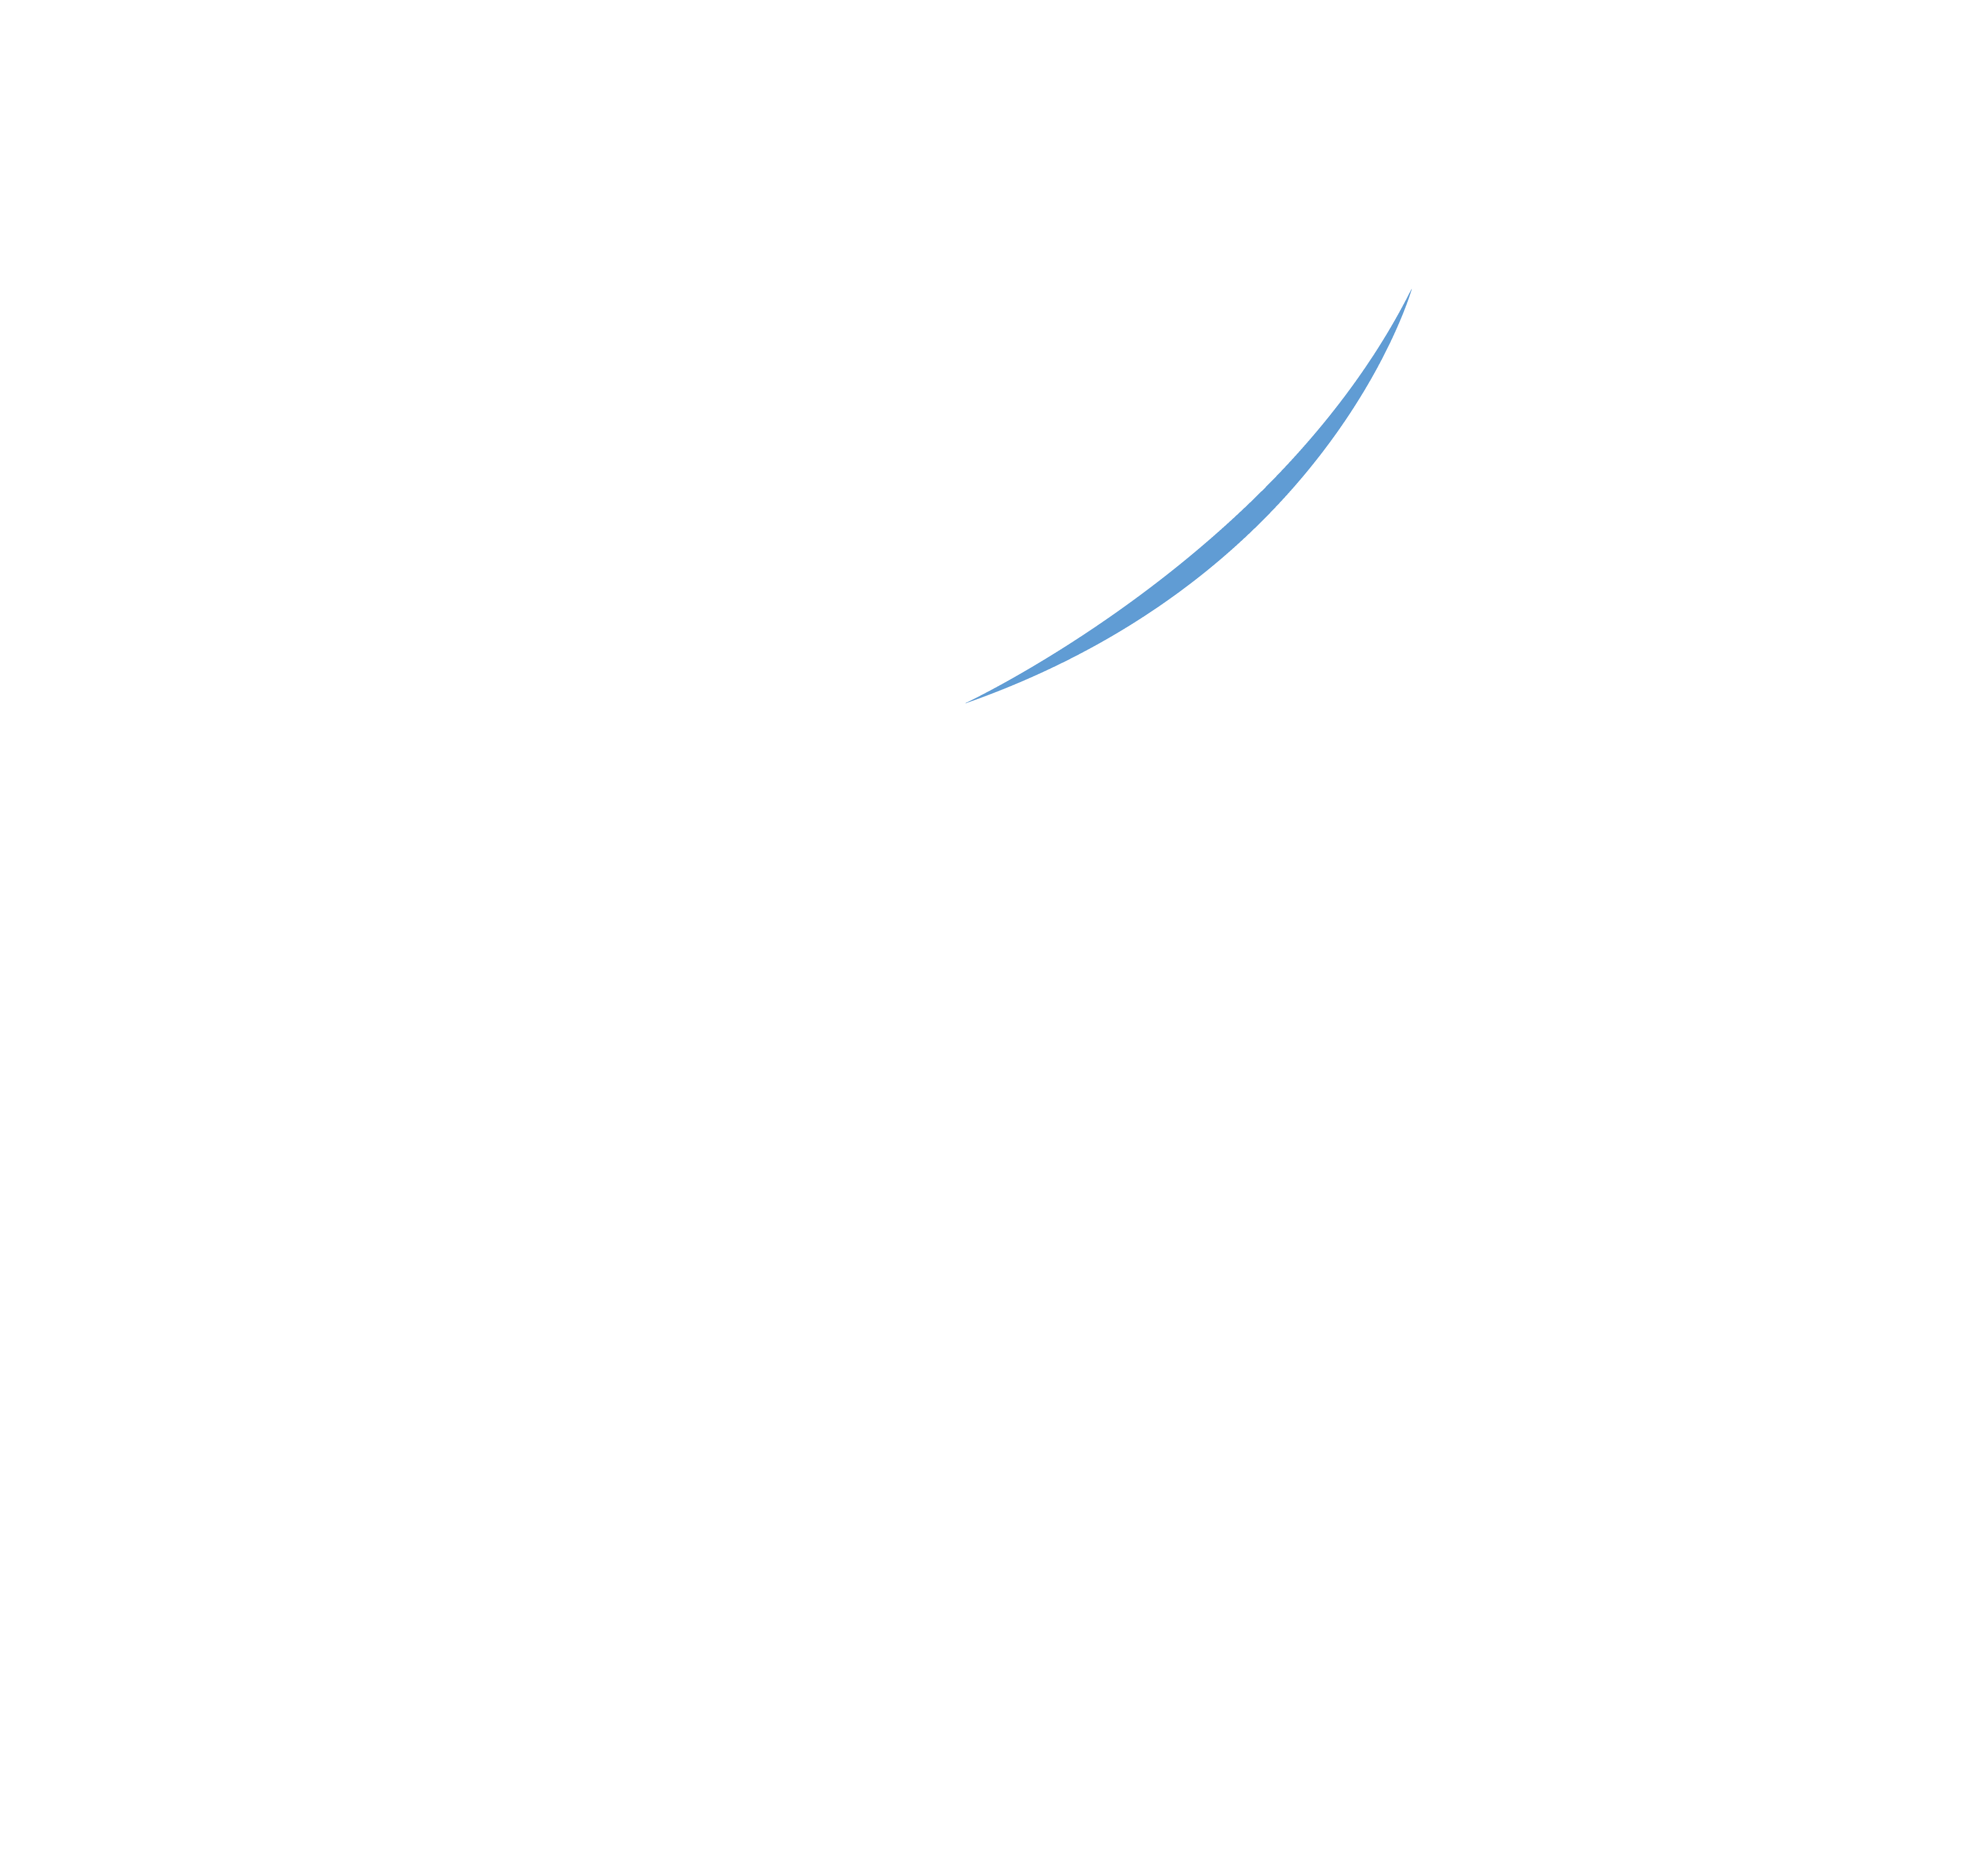 QSE Performances